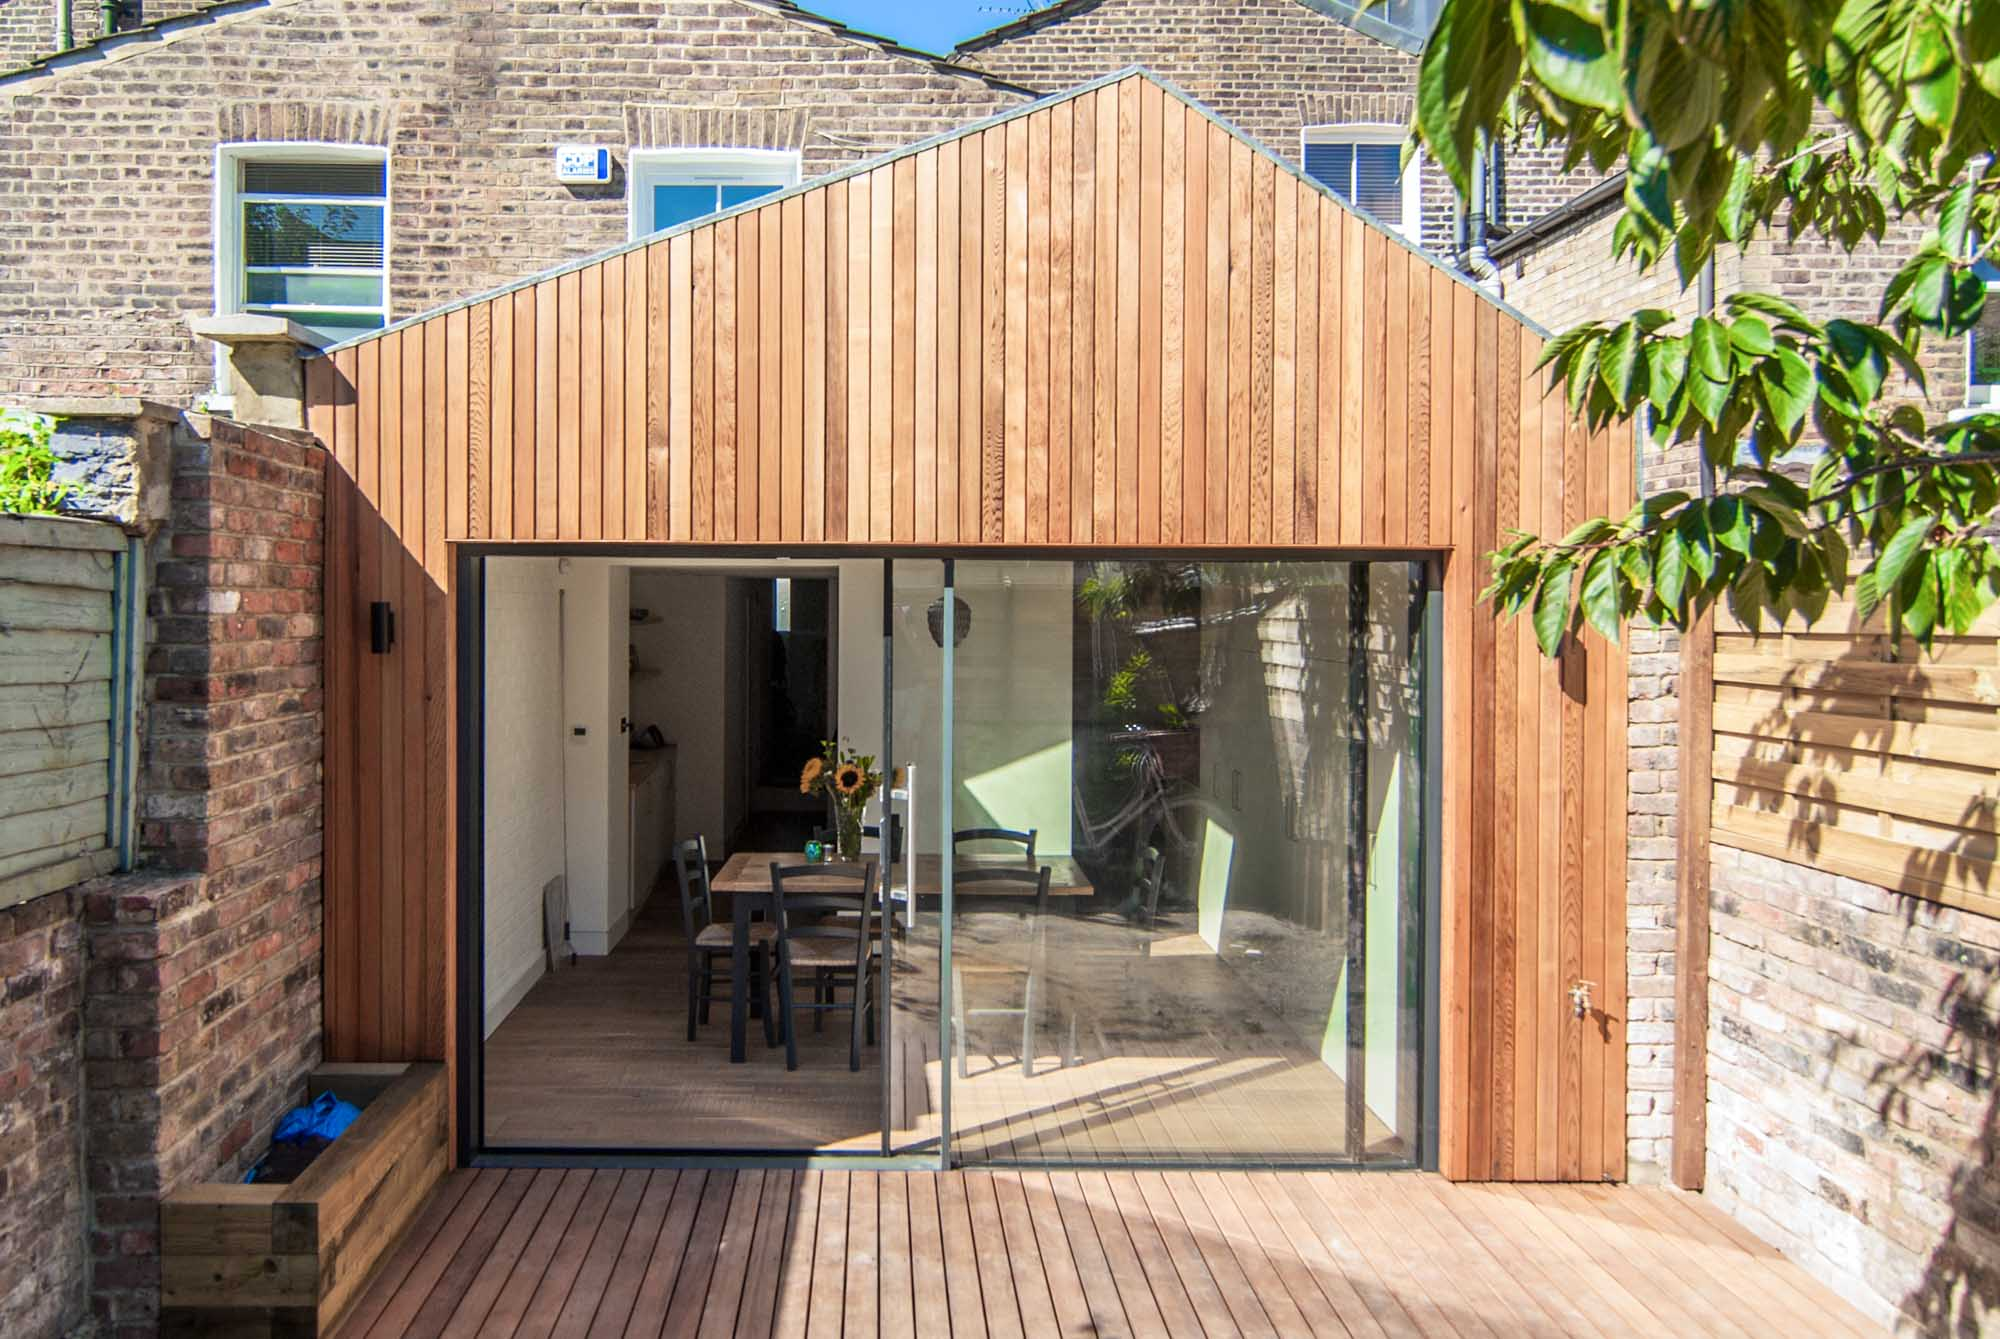 Full view of timber cladding rear extension with large sliding doors.